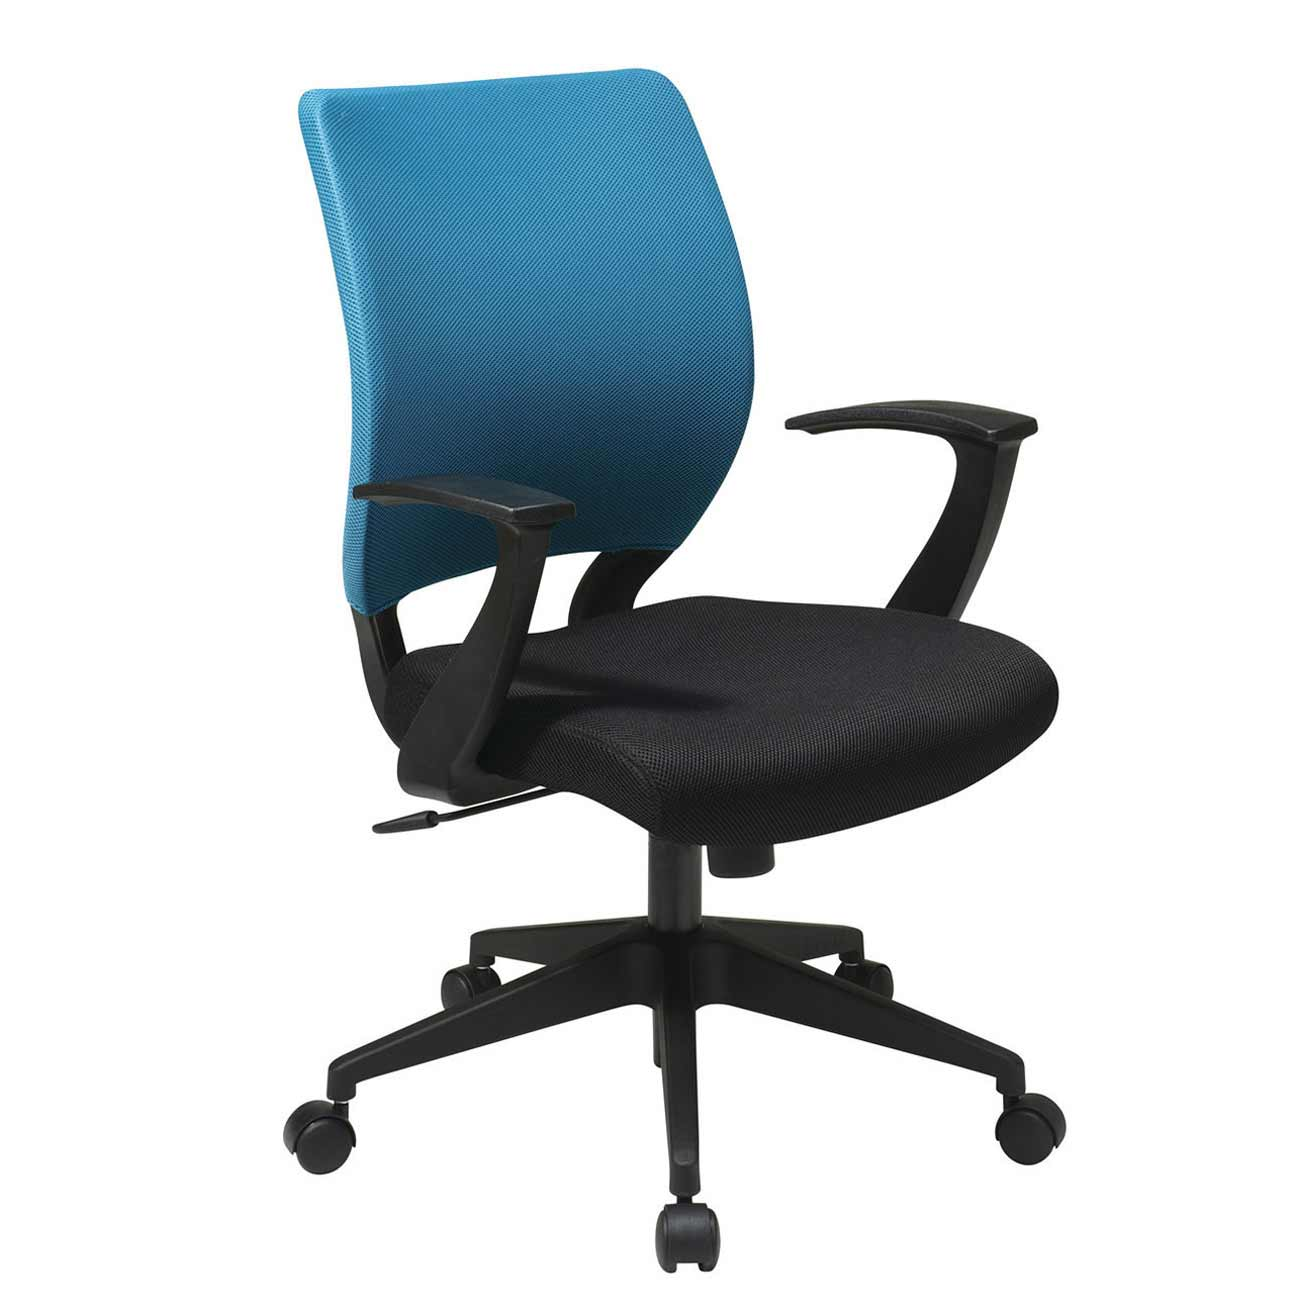 blue office chair bedroom target as nice interiors